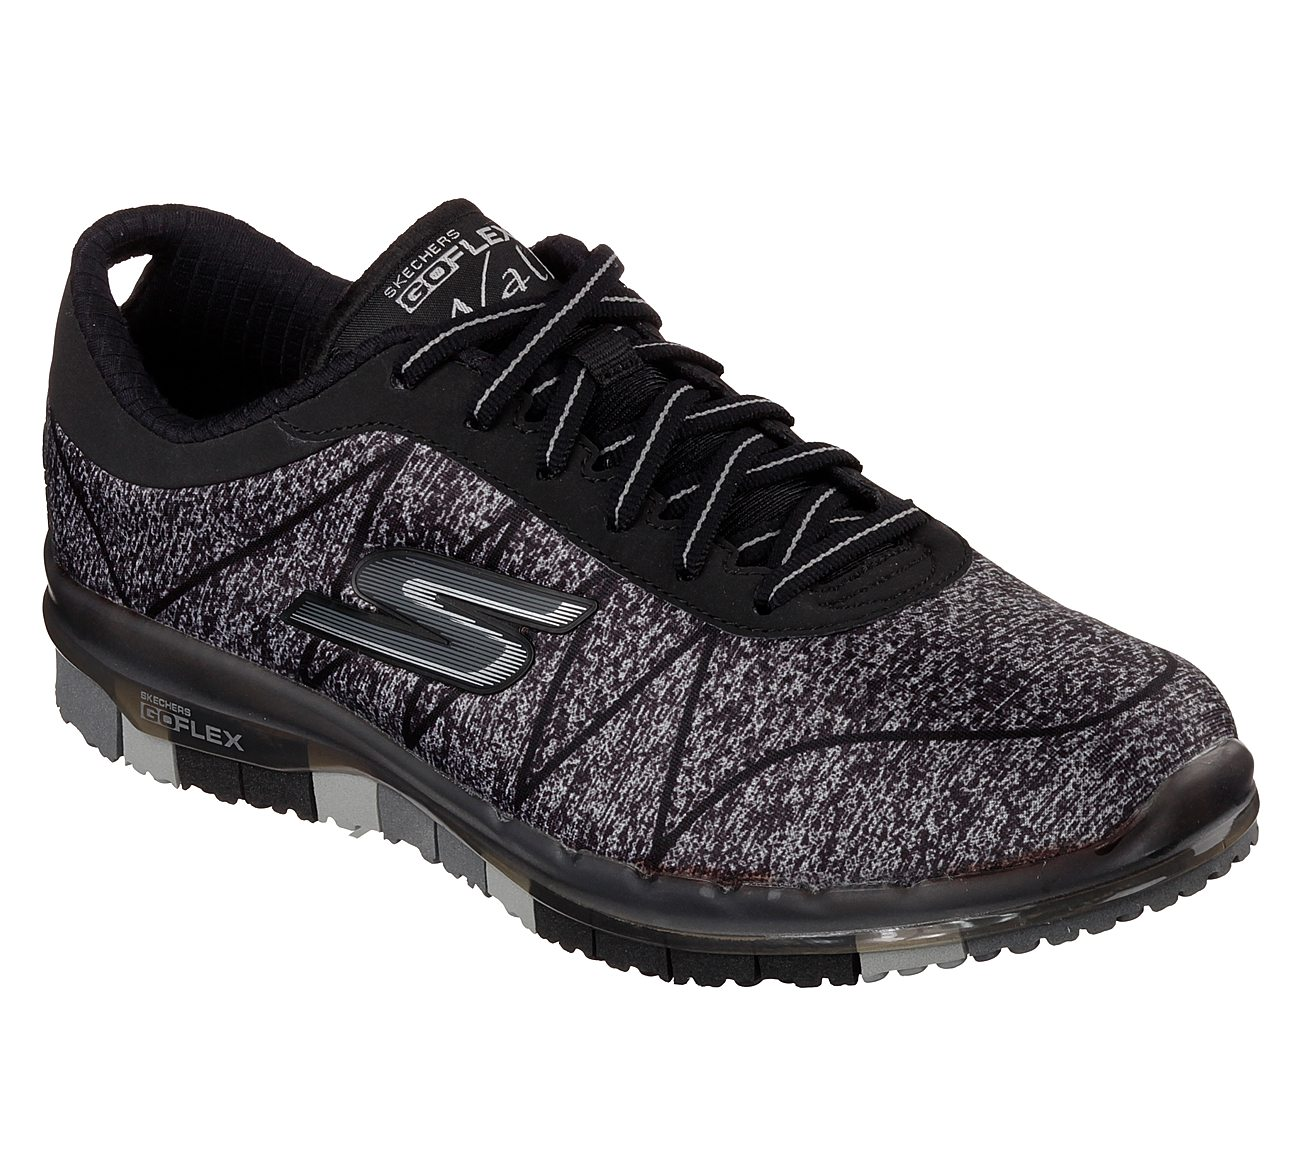 Buy SKECHERS Skechers GO FLEX Walk - Ability Skechers Performance Shoes  only $50.00